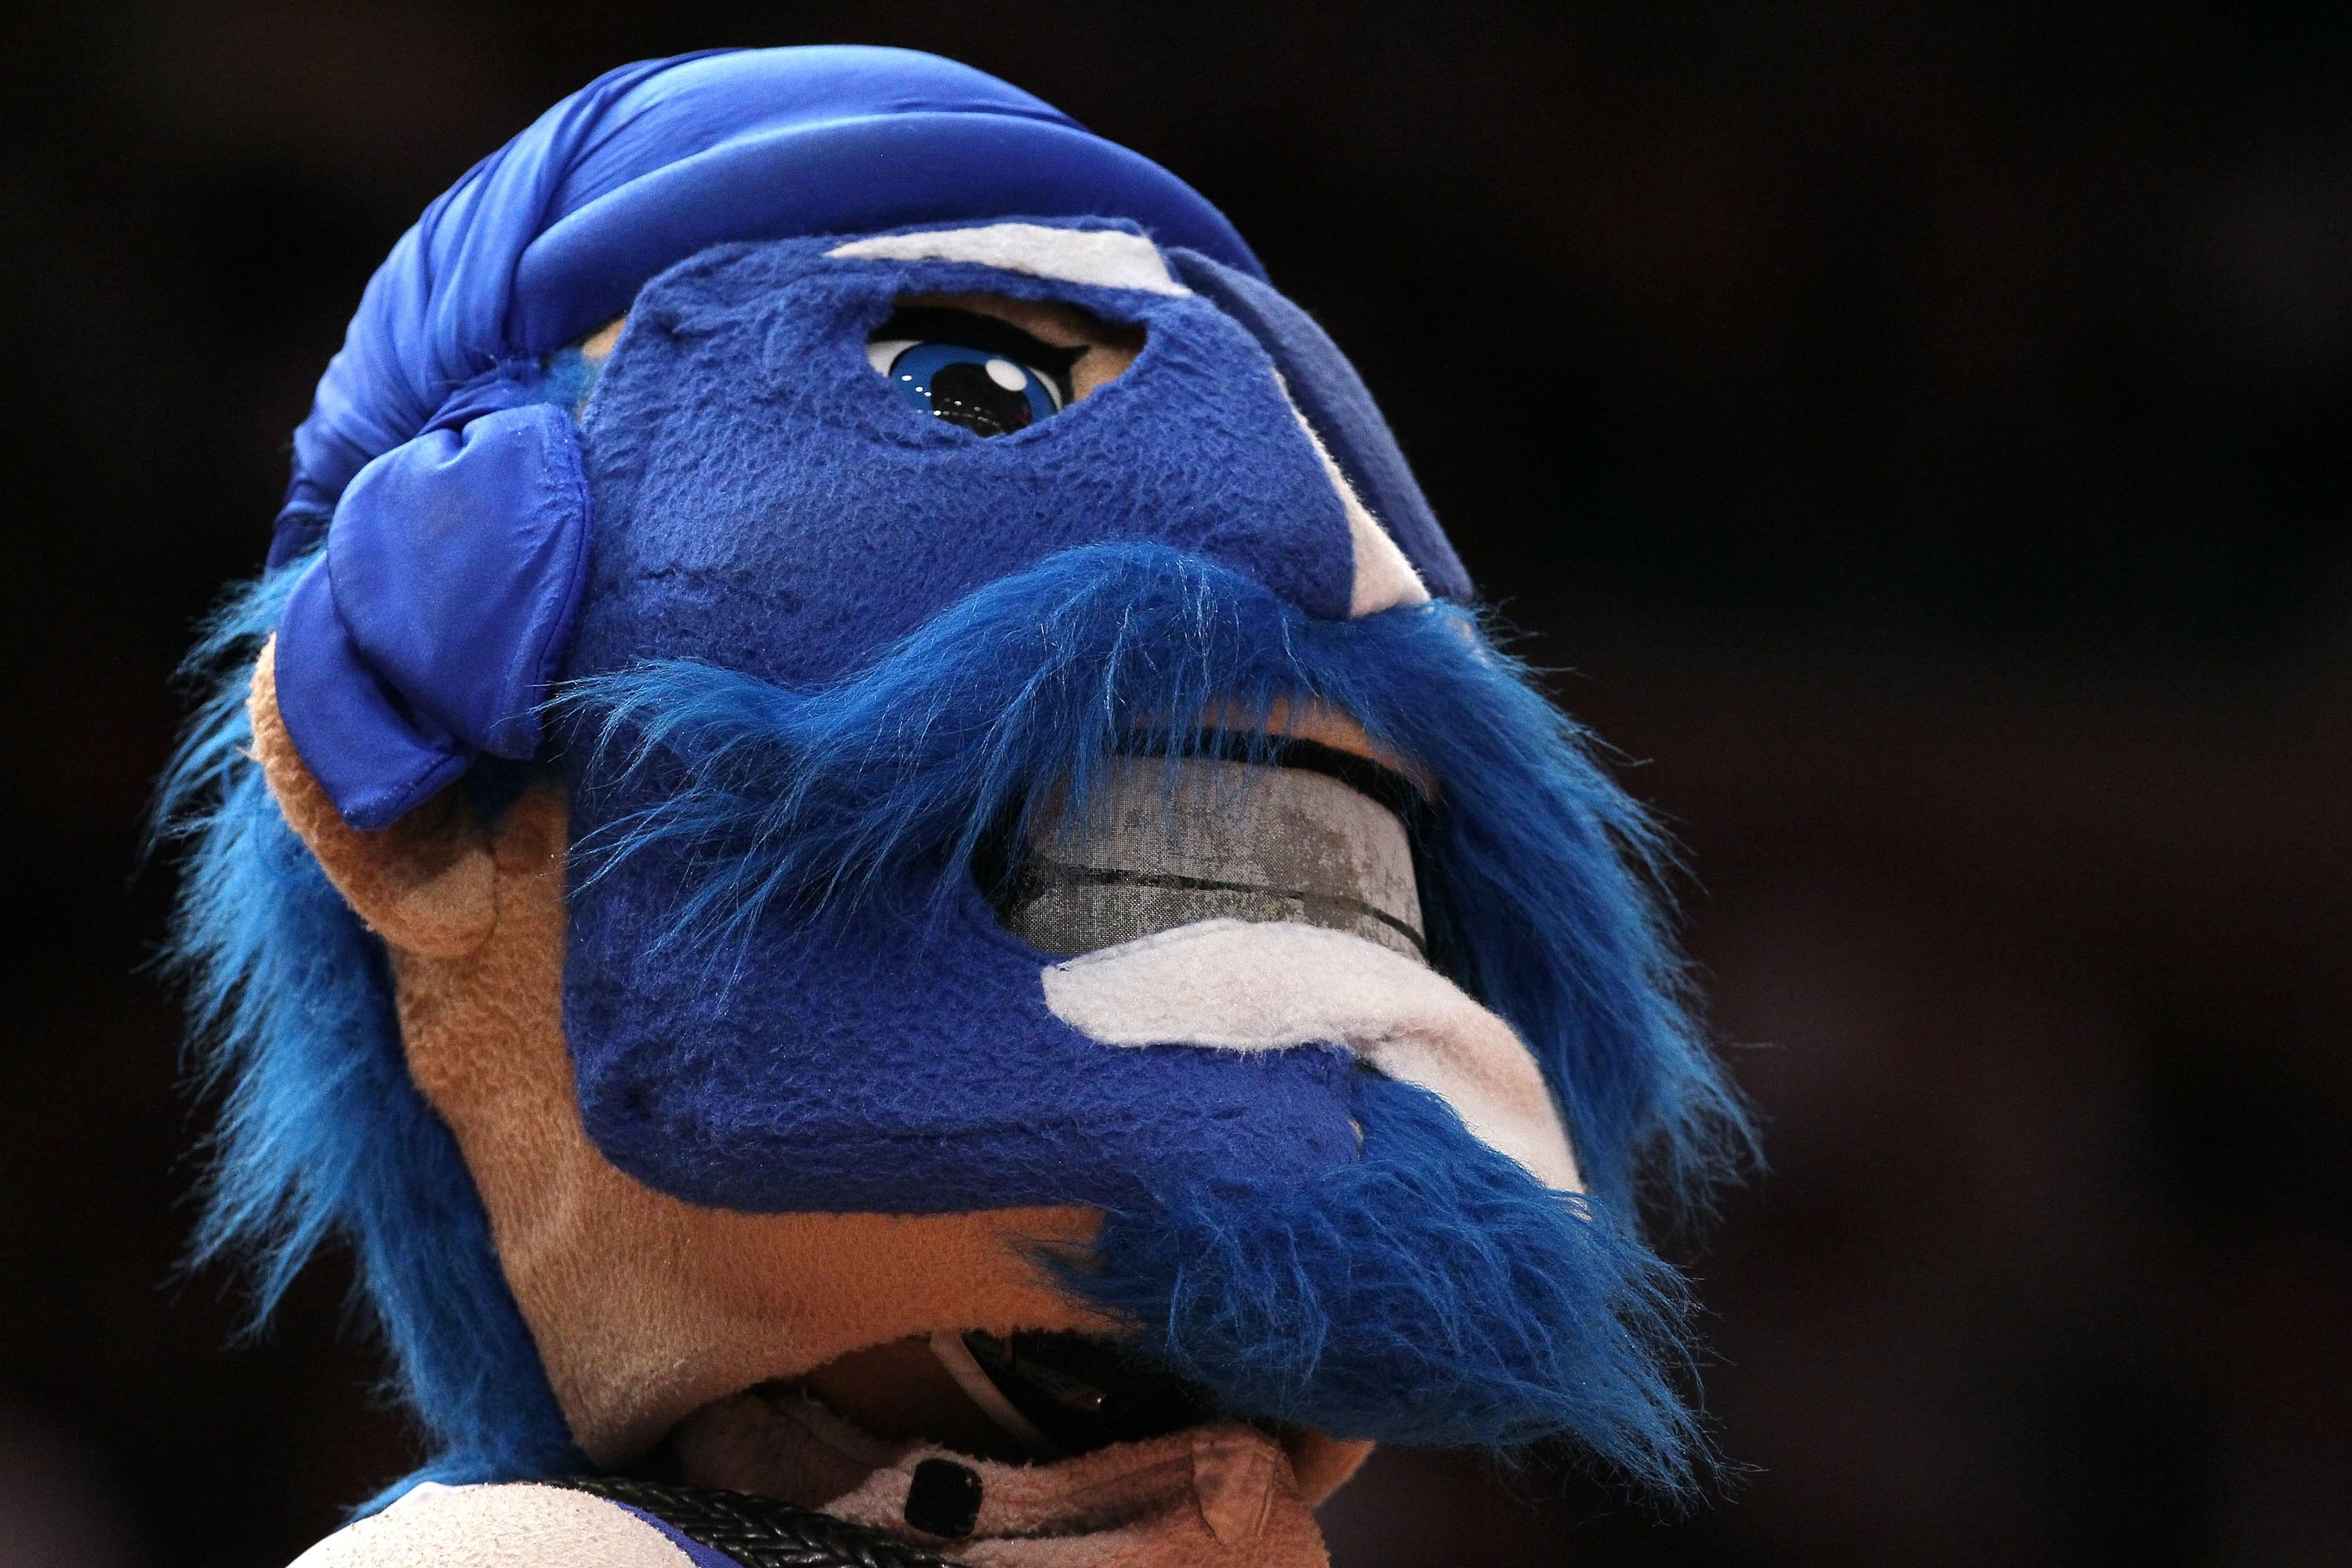 NEW YORK - MARCH 10:  The Seton Hall Pirates mascot walks on the court against the Notre Dame Fighting Irish during the second round of 2010 NCAA Big East Tournament at Madison Square Garden on March 10, 2010 in New York City.  (Photo by Jim McIsaac/Getty